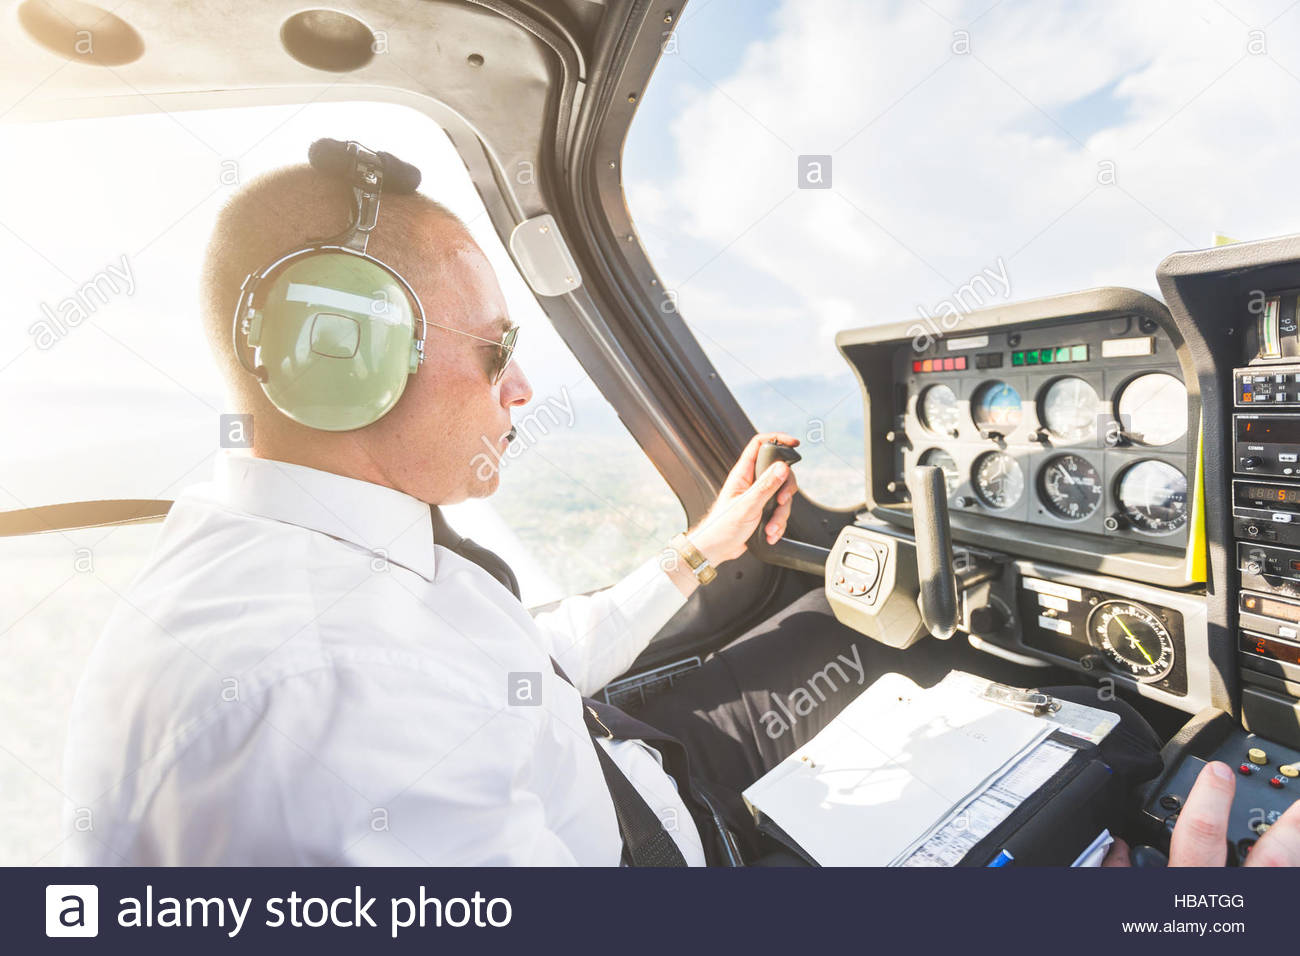 Pilot in cockpit of aircraft, in flight - Stock Image